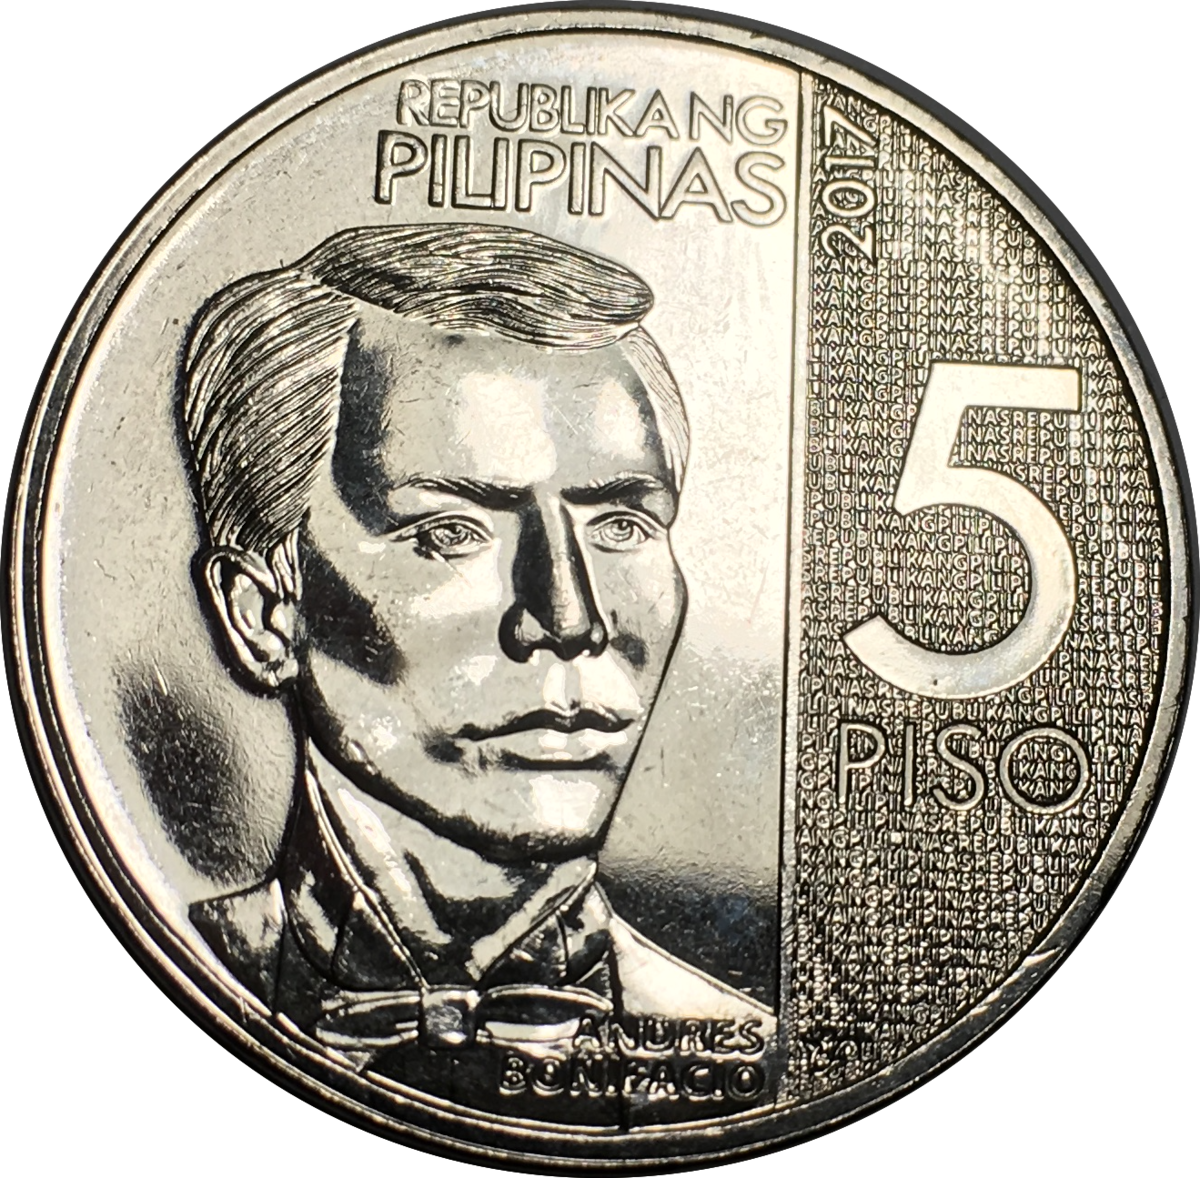 Coin Ph: Philippine Five Peso Coin